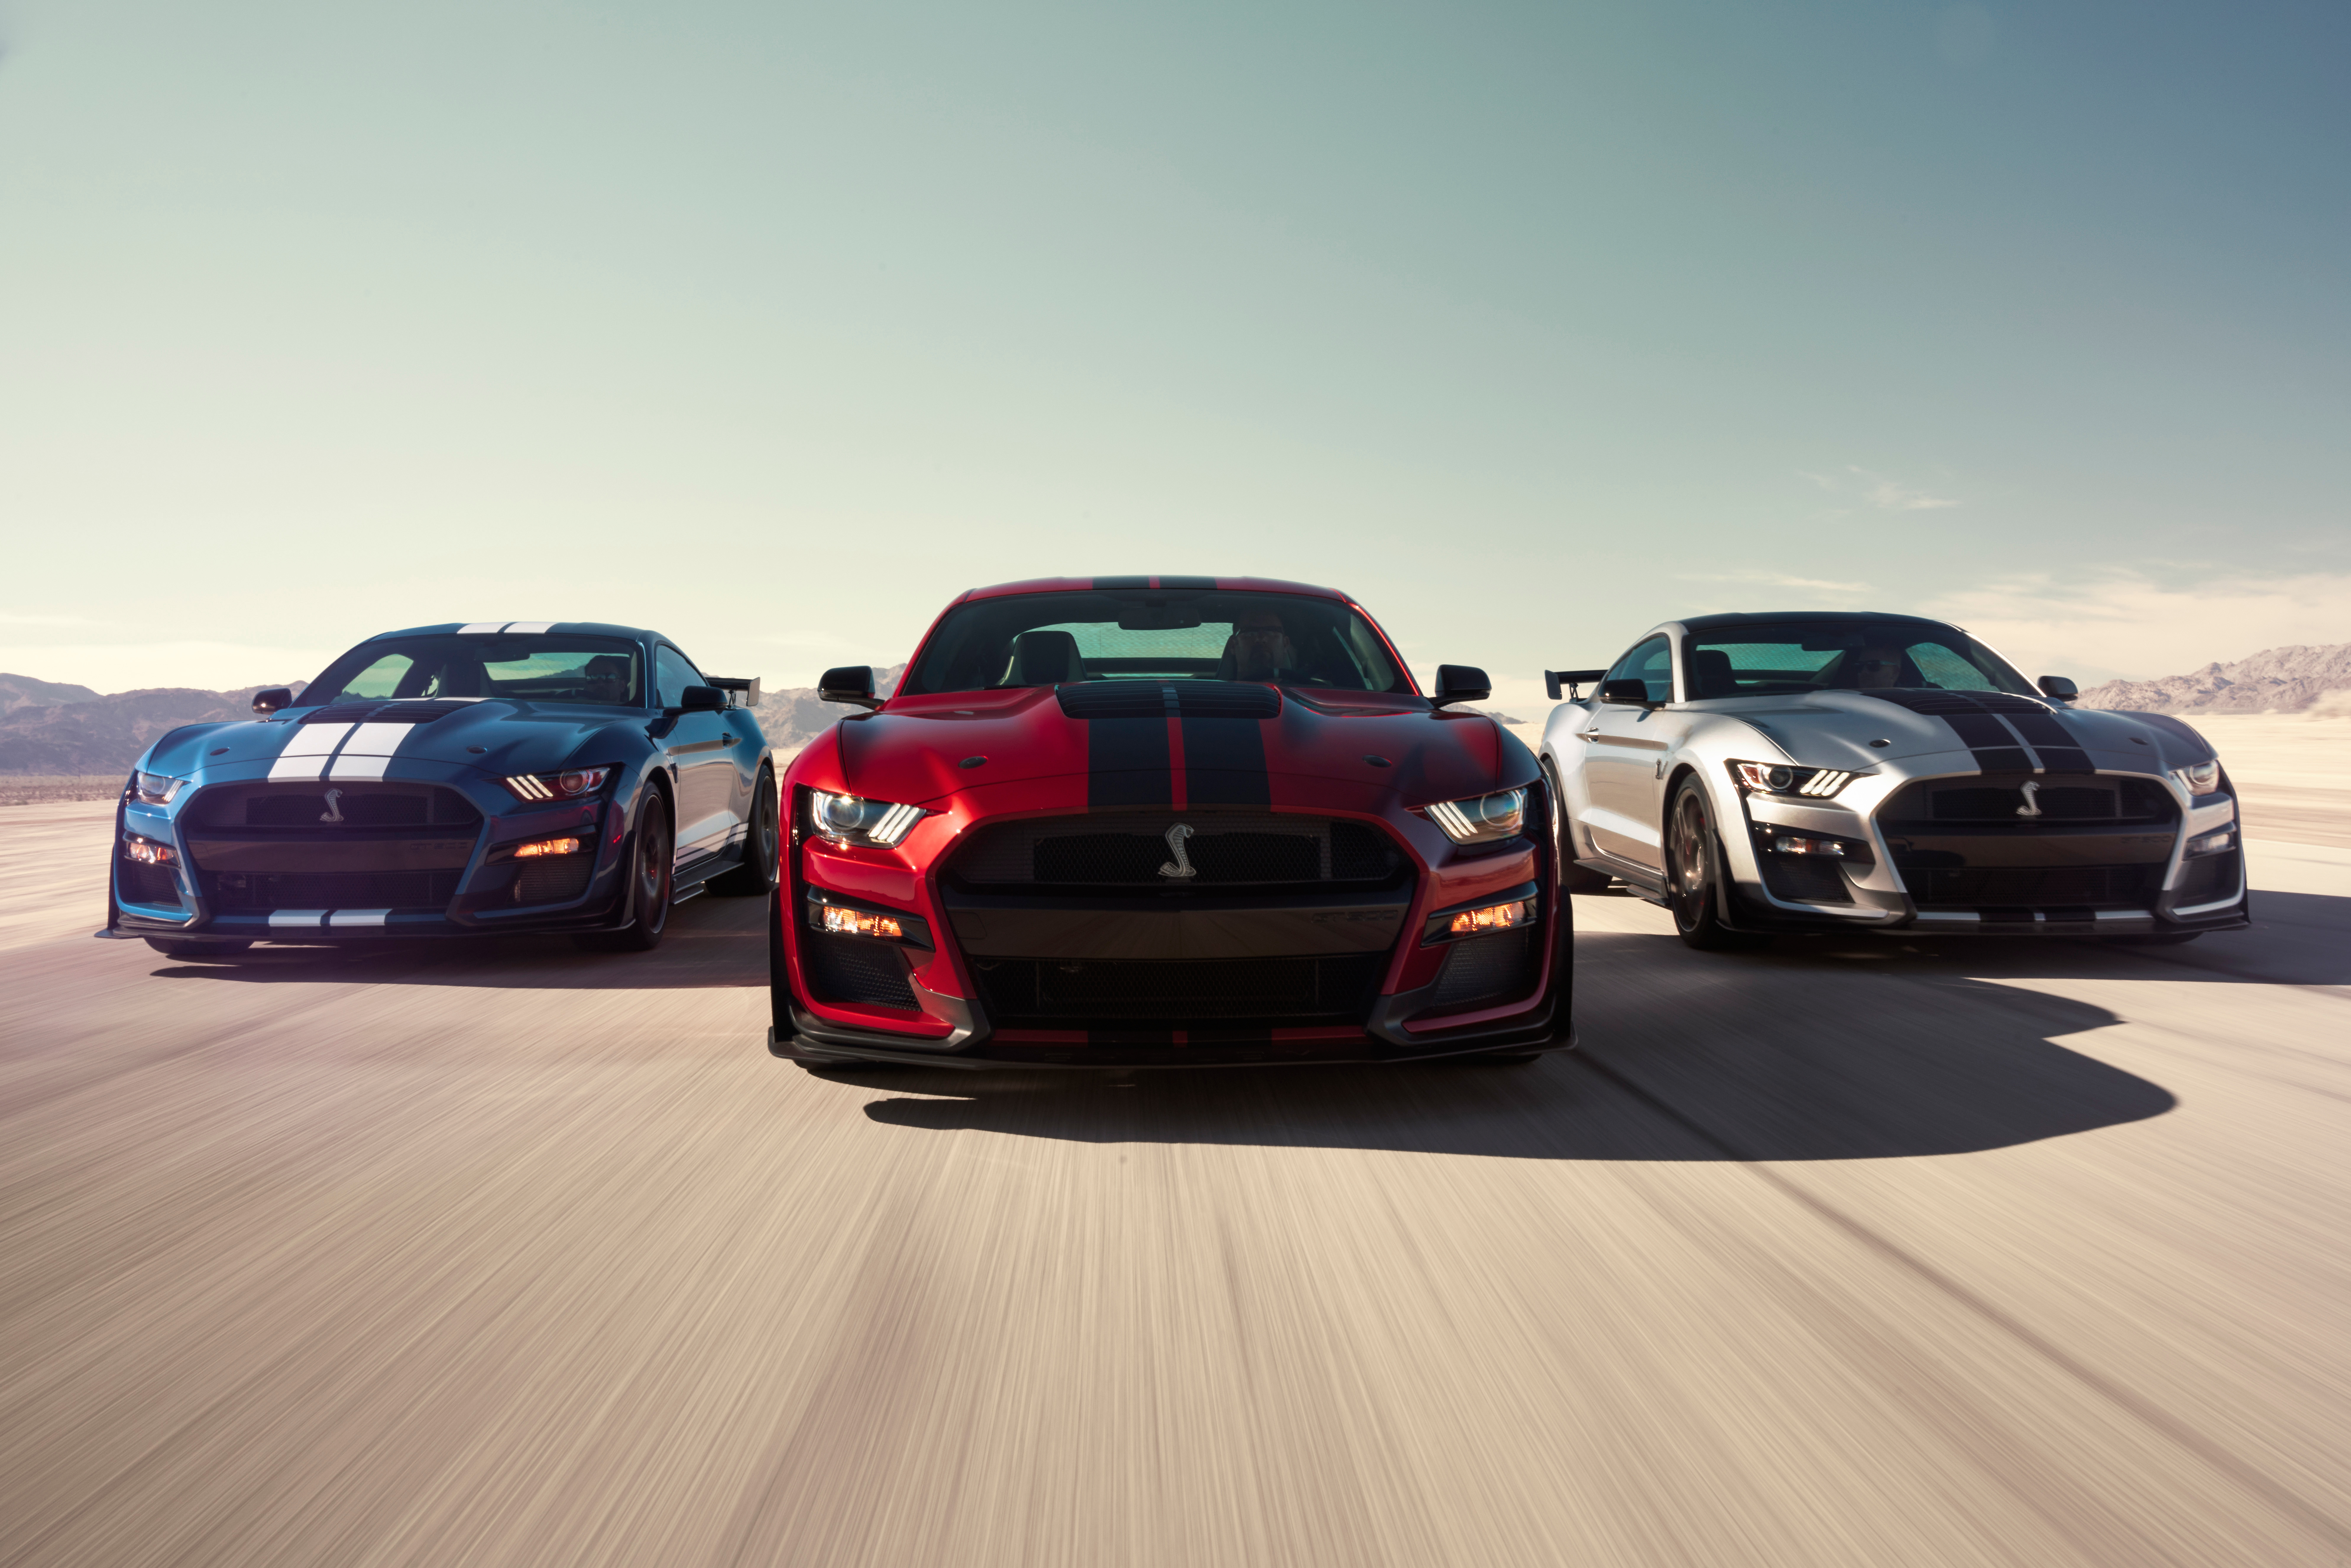 2560x1440 2020 Ford Mustang Shelby Gt500 8k 1440p Resolution Hd 4k Wallpapers Images Backgrounds Photos And Pictures